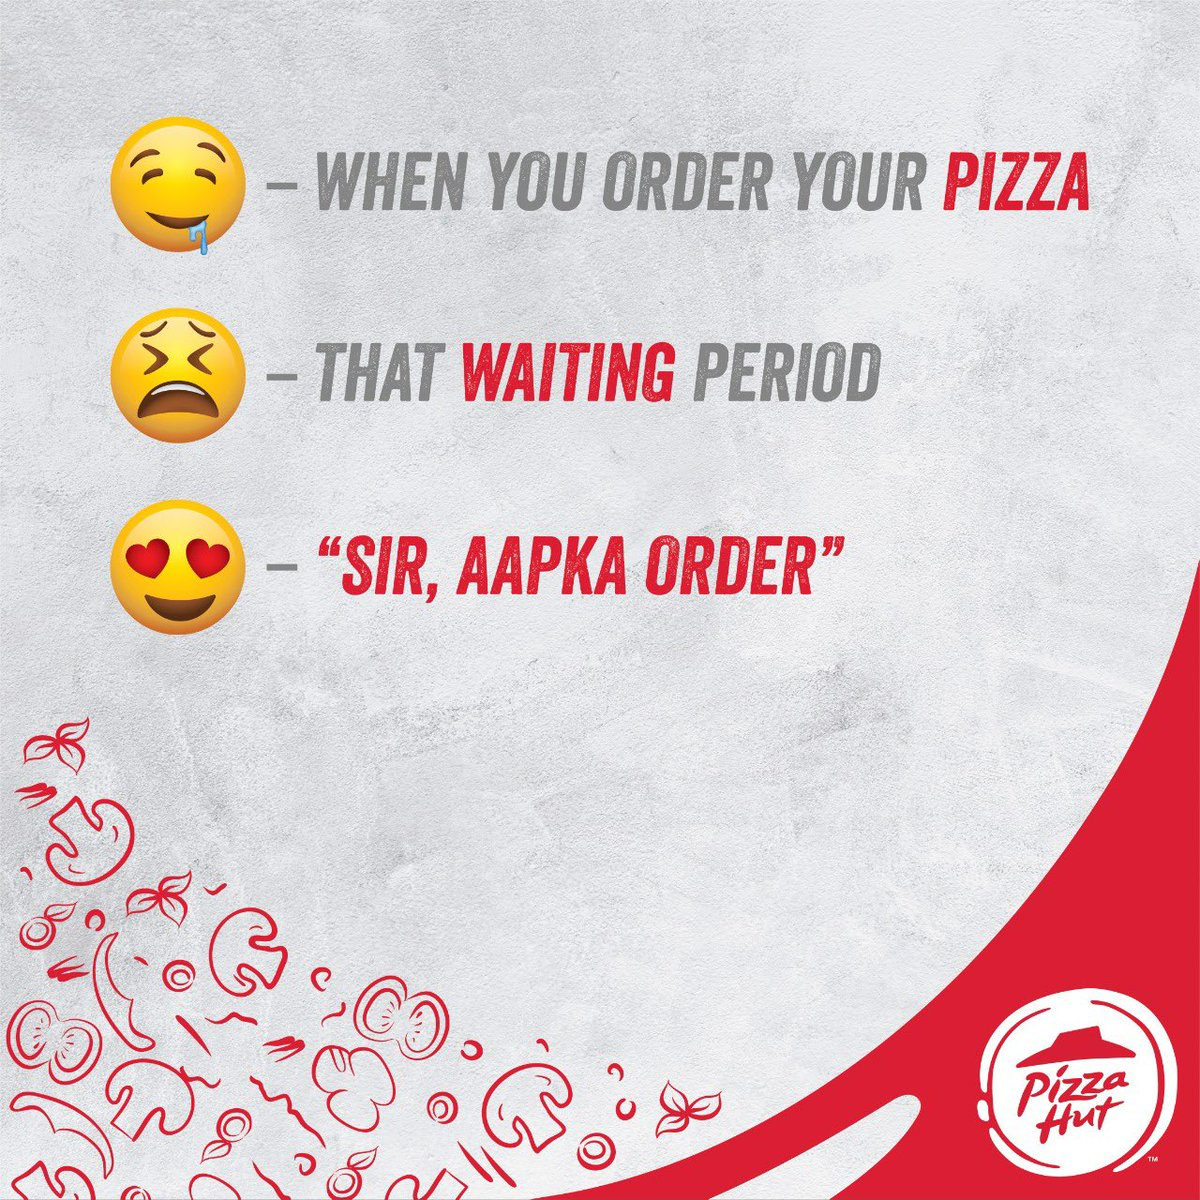 Whats your face like when you see your favorite pizza Tell us in an emoji in the comment section below. https t